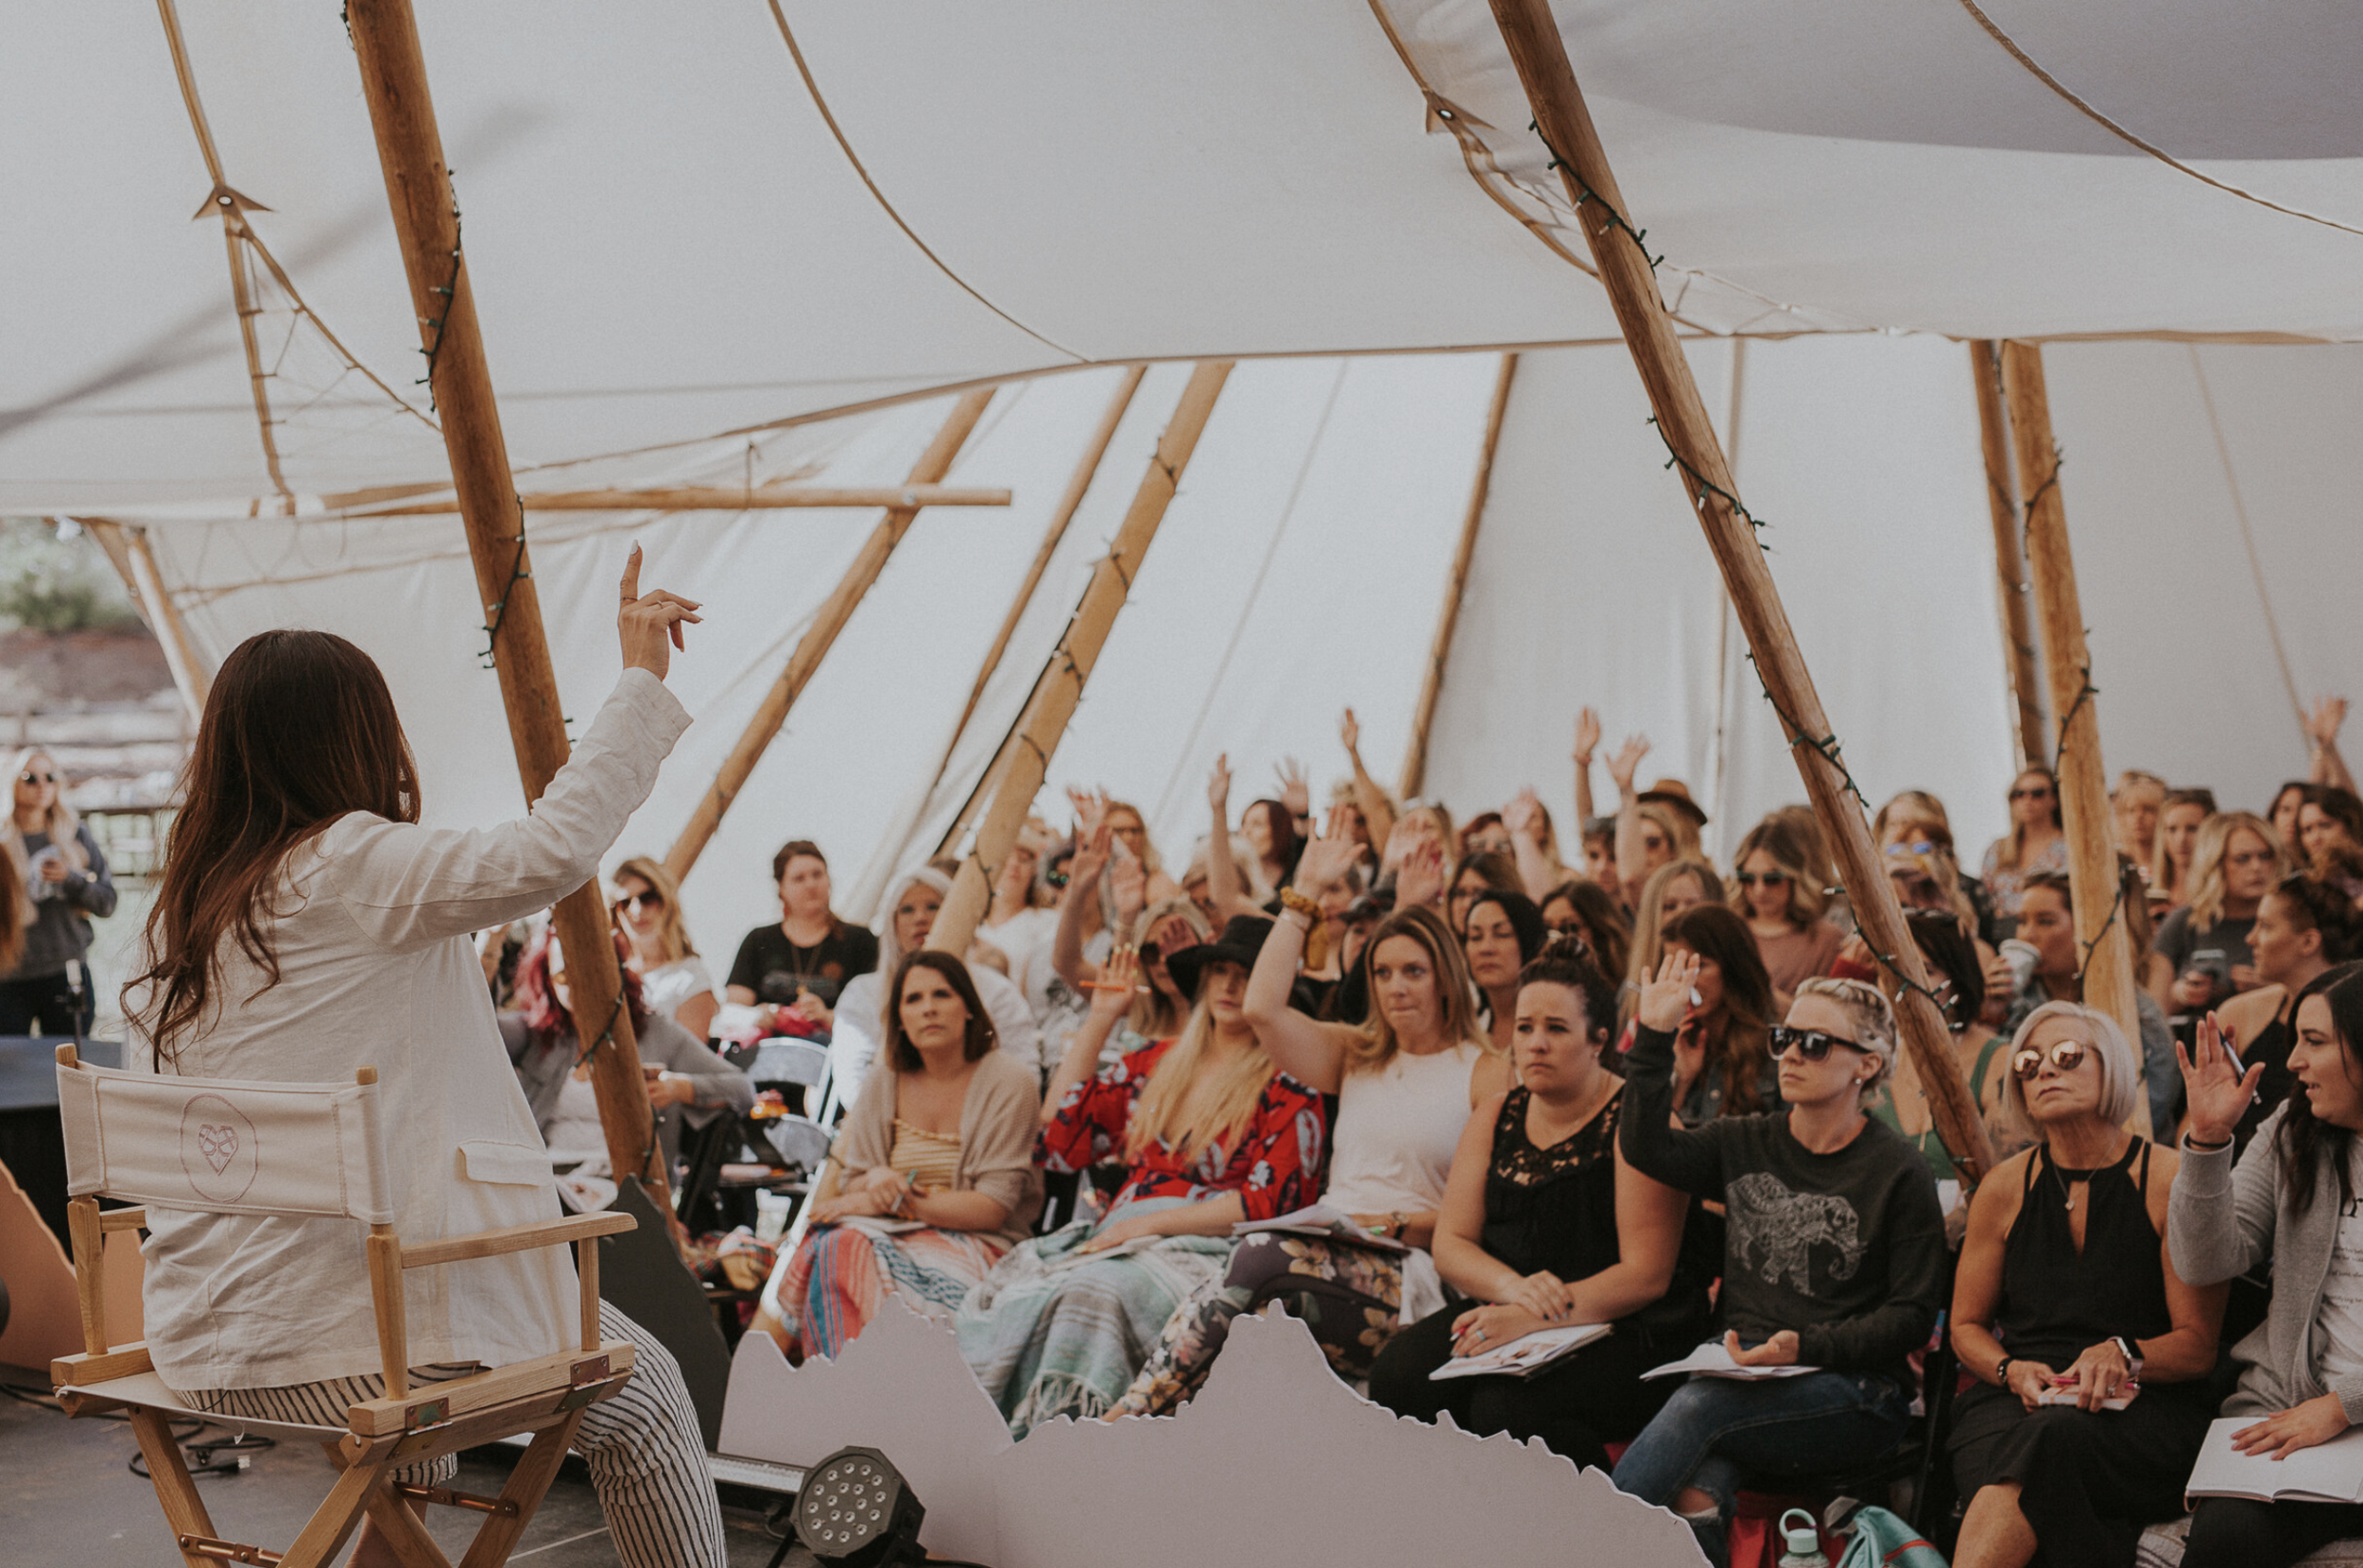 HAIR LOVE RETREAT - Hair Love Retreat is a life changing experience for dreamers in the Hair Industry. We bring the brightest minds and lights from around the world to one location for 5 days of magic.